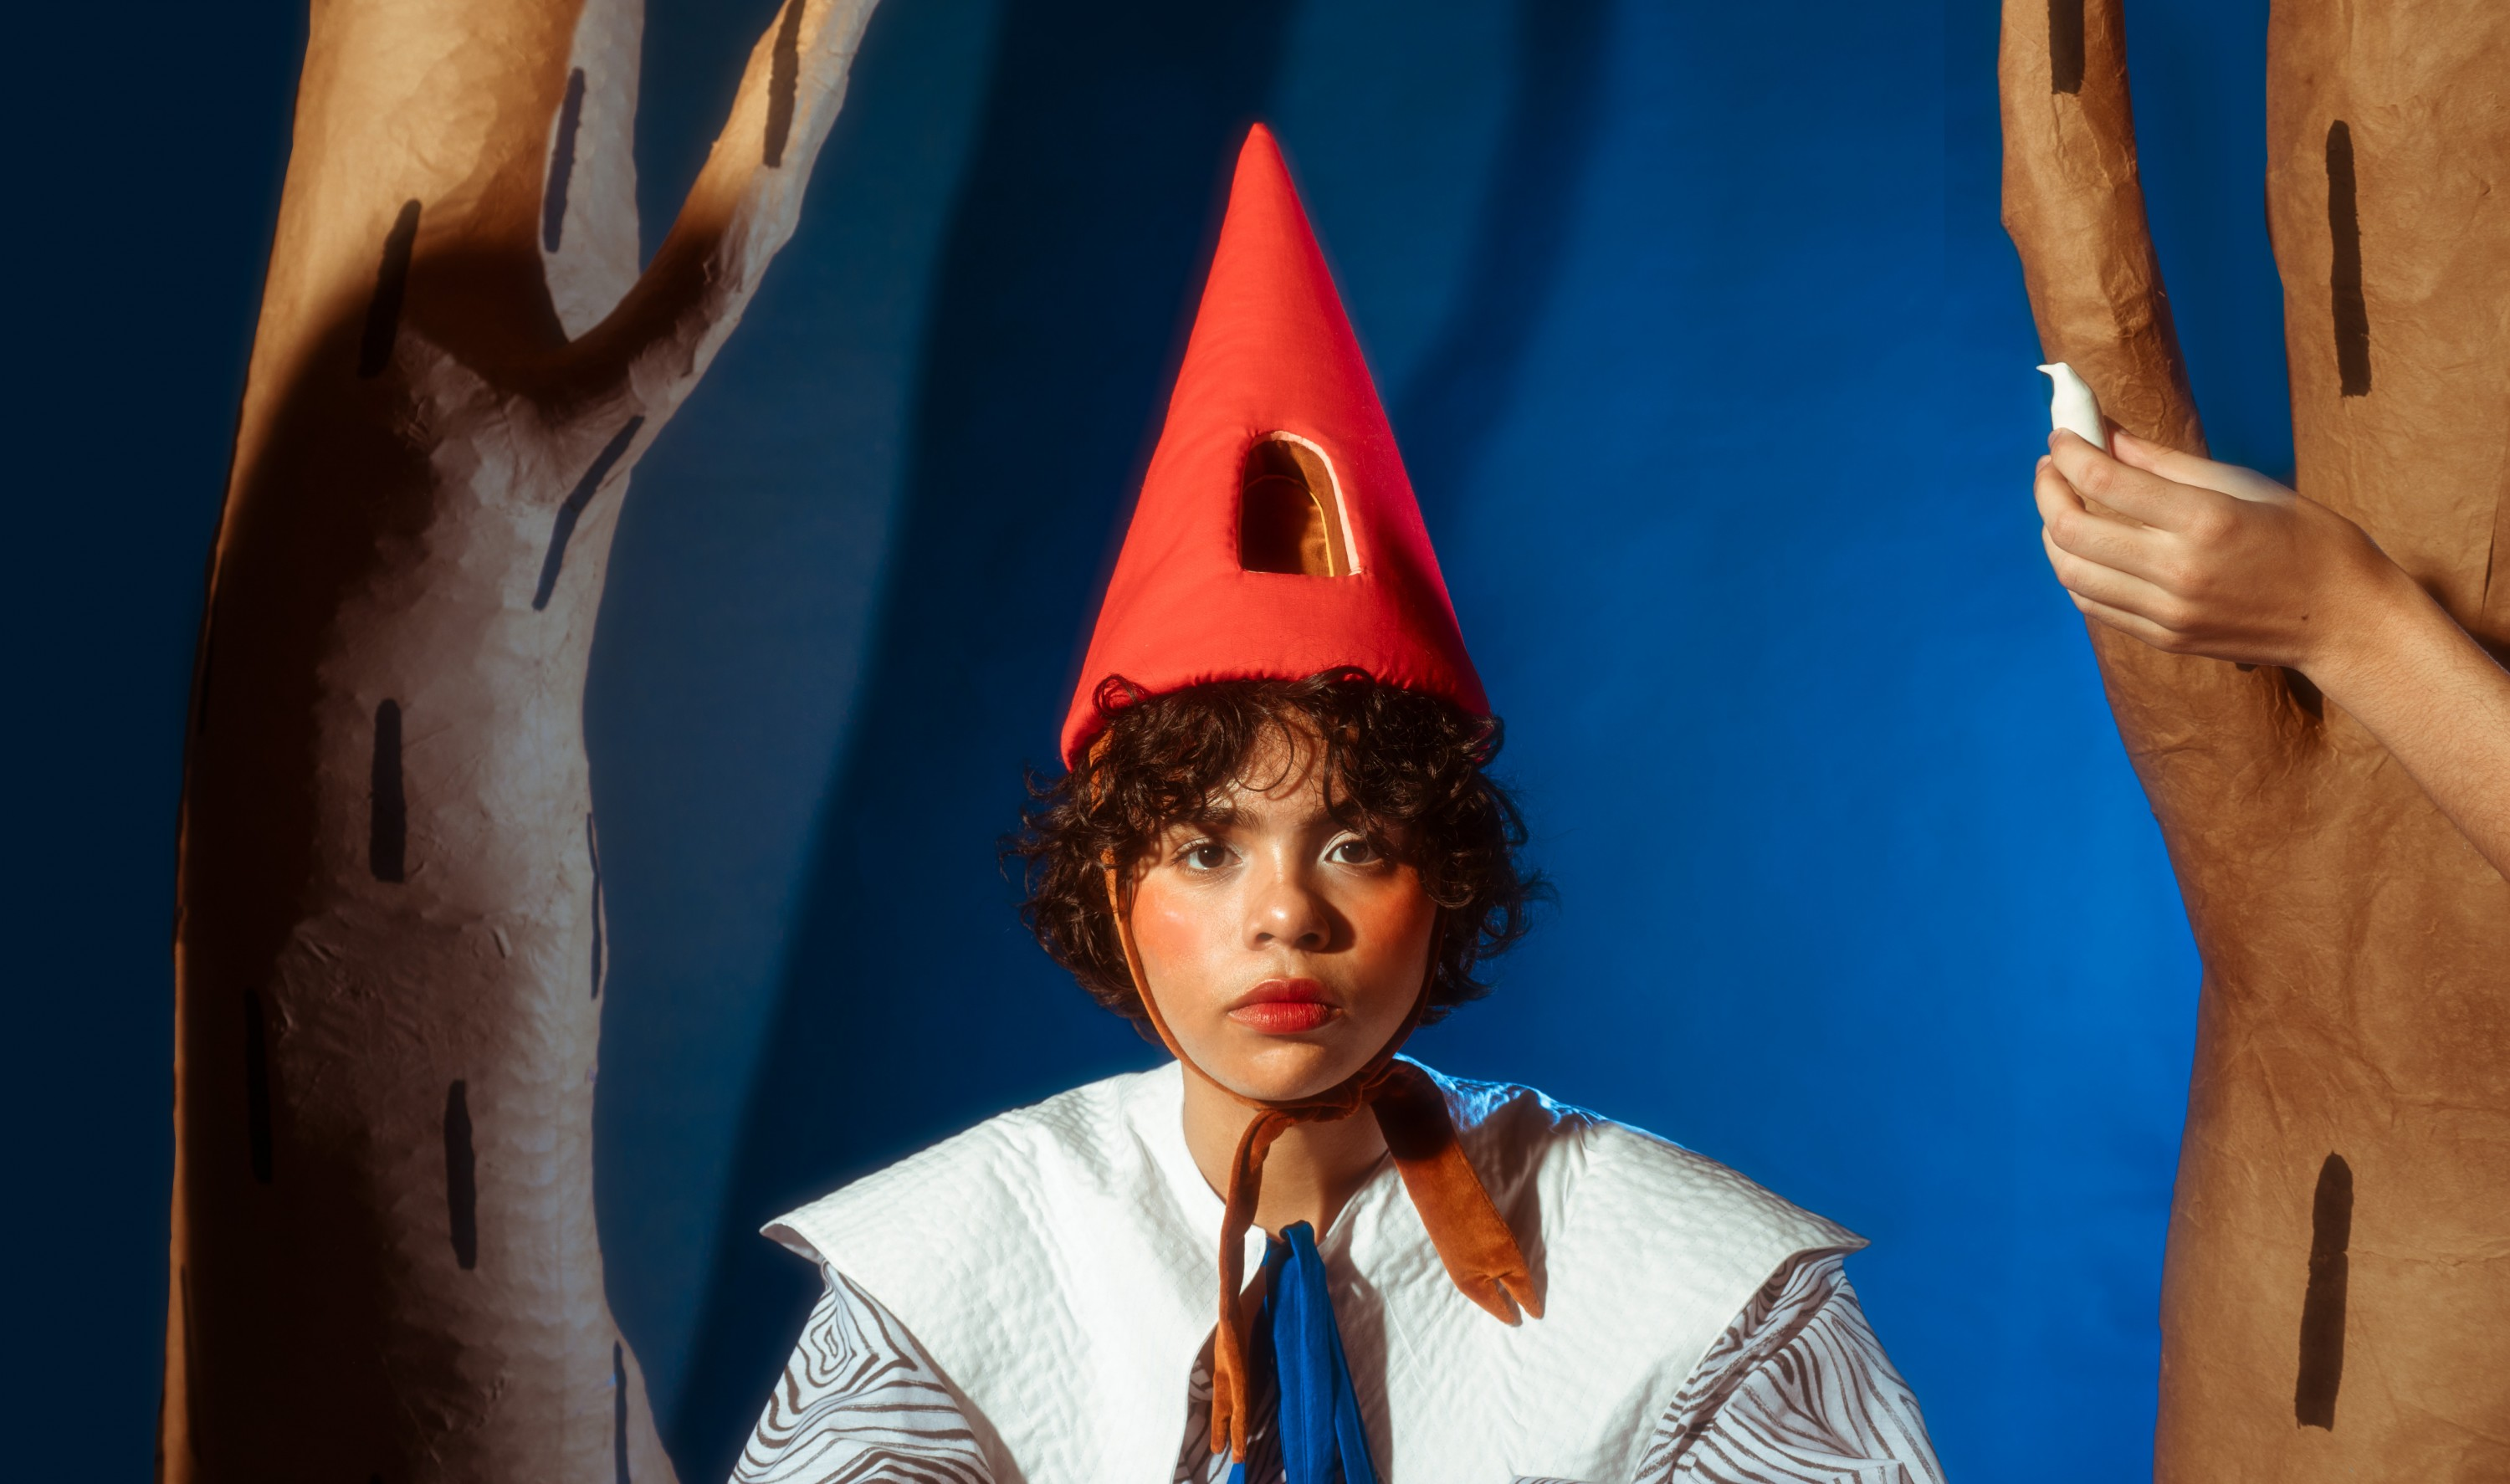 In Image one, you see the head and shoulders of a model wearing a red pointy hat with a nook inside. The model sits in front of a blue backdrop between two paper mache trees that are brown with a painted black dash pattern. The model is looking directly a